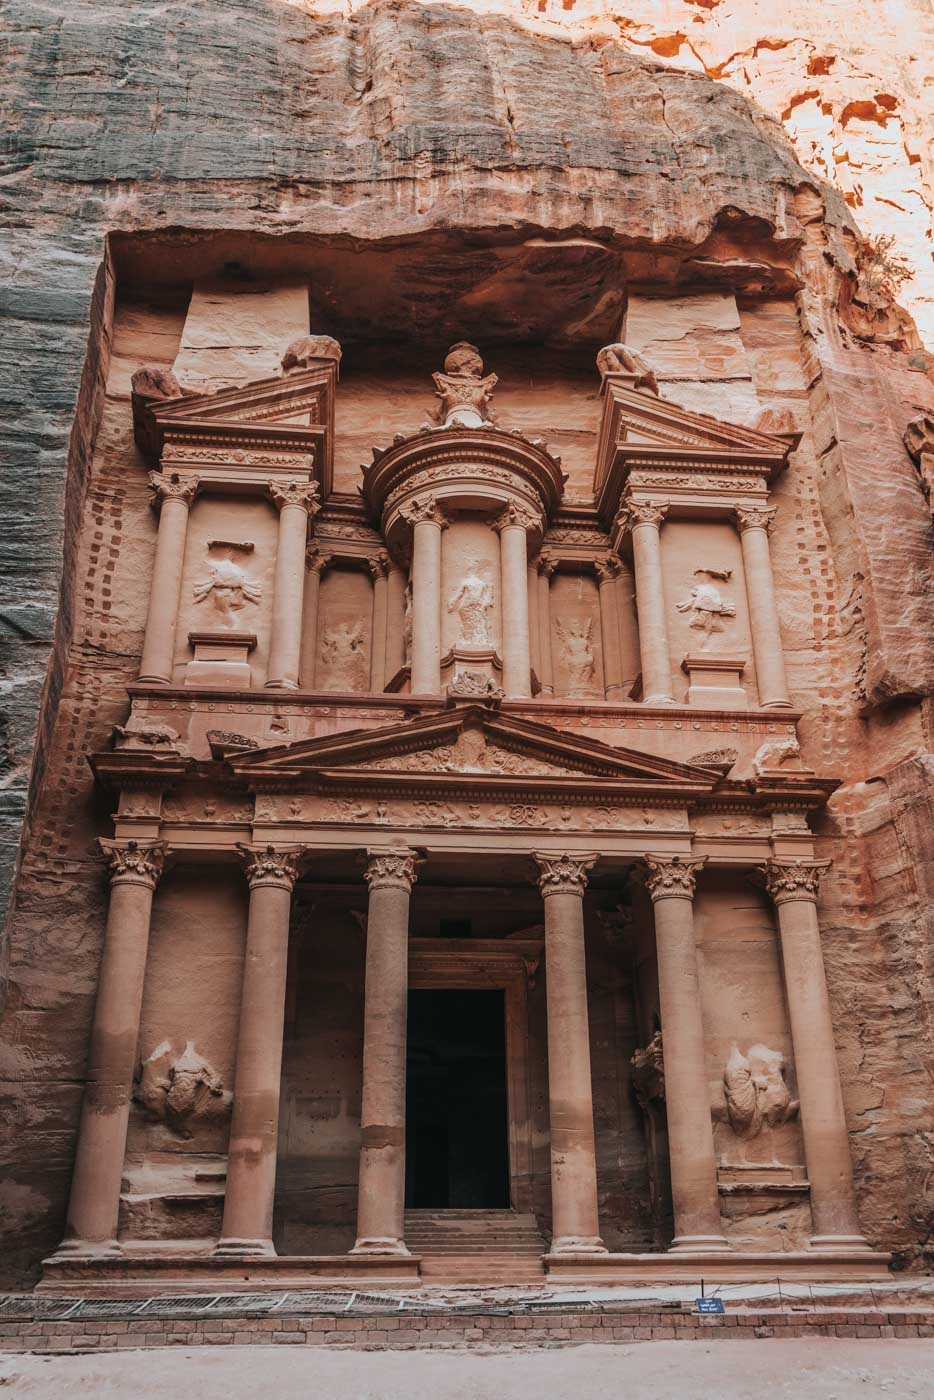 Jordan tourist attraction: Petra